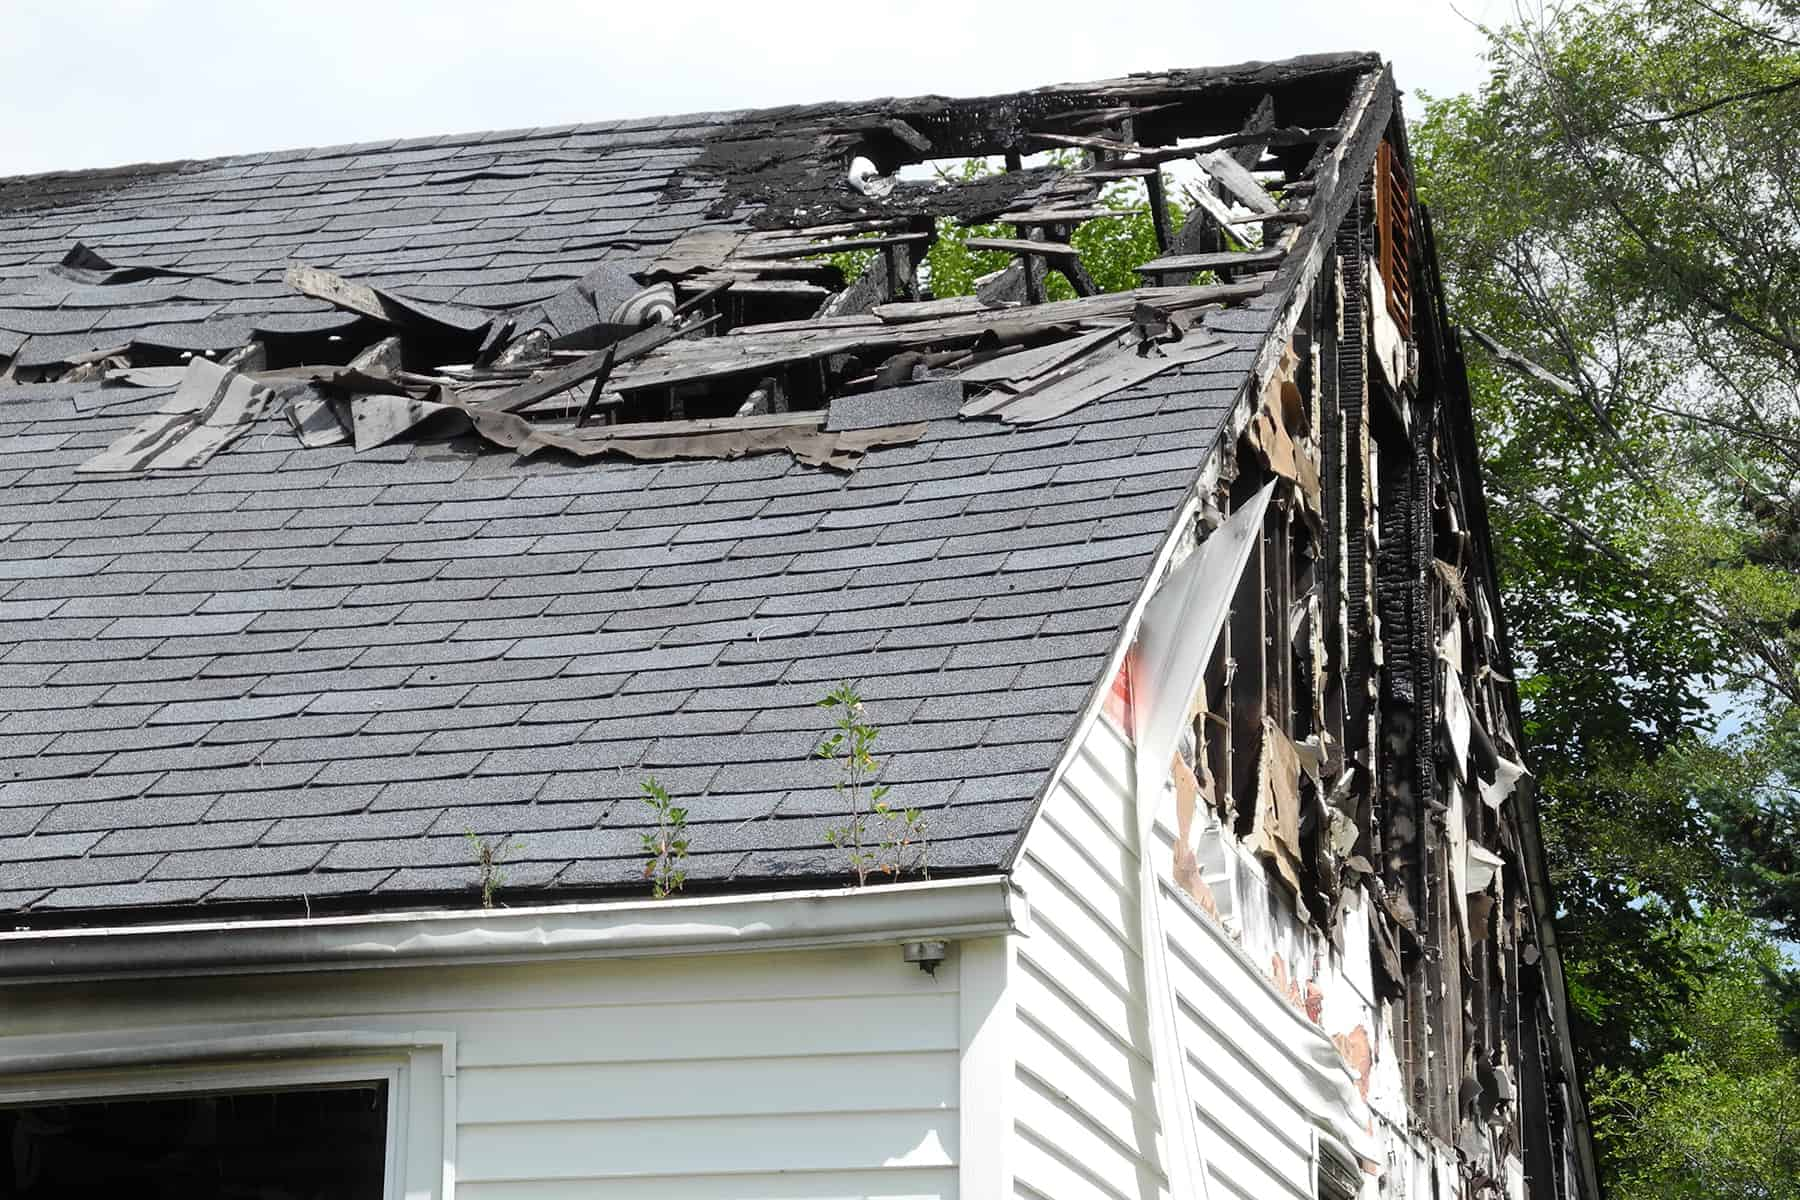 what can be salvaged after a house fire